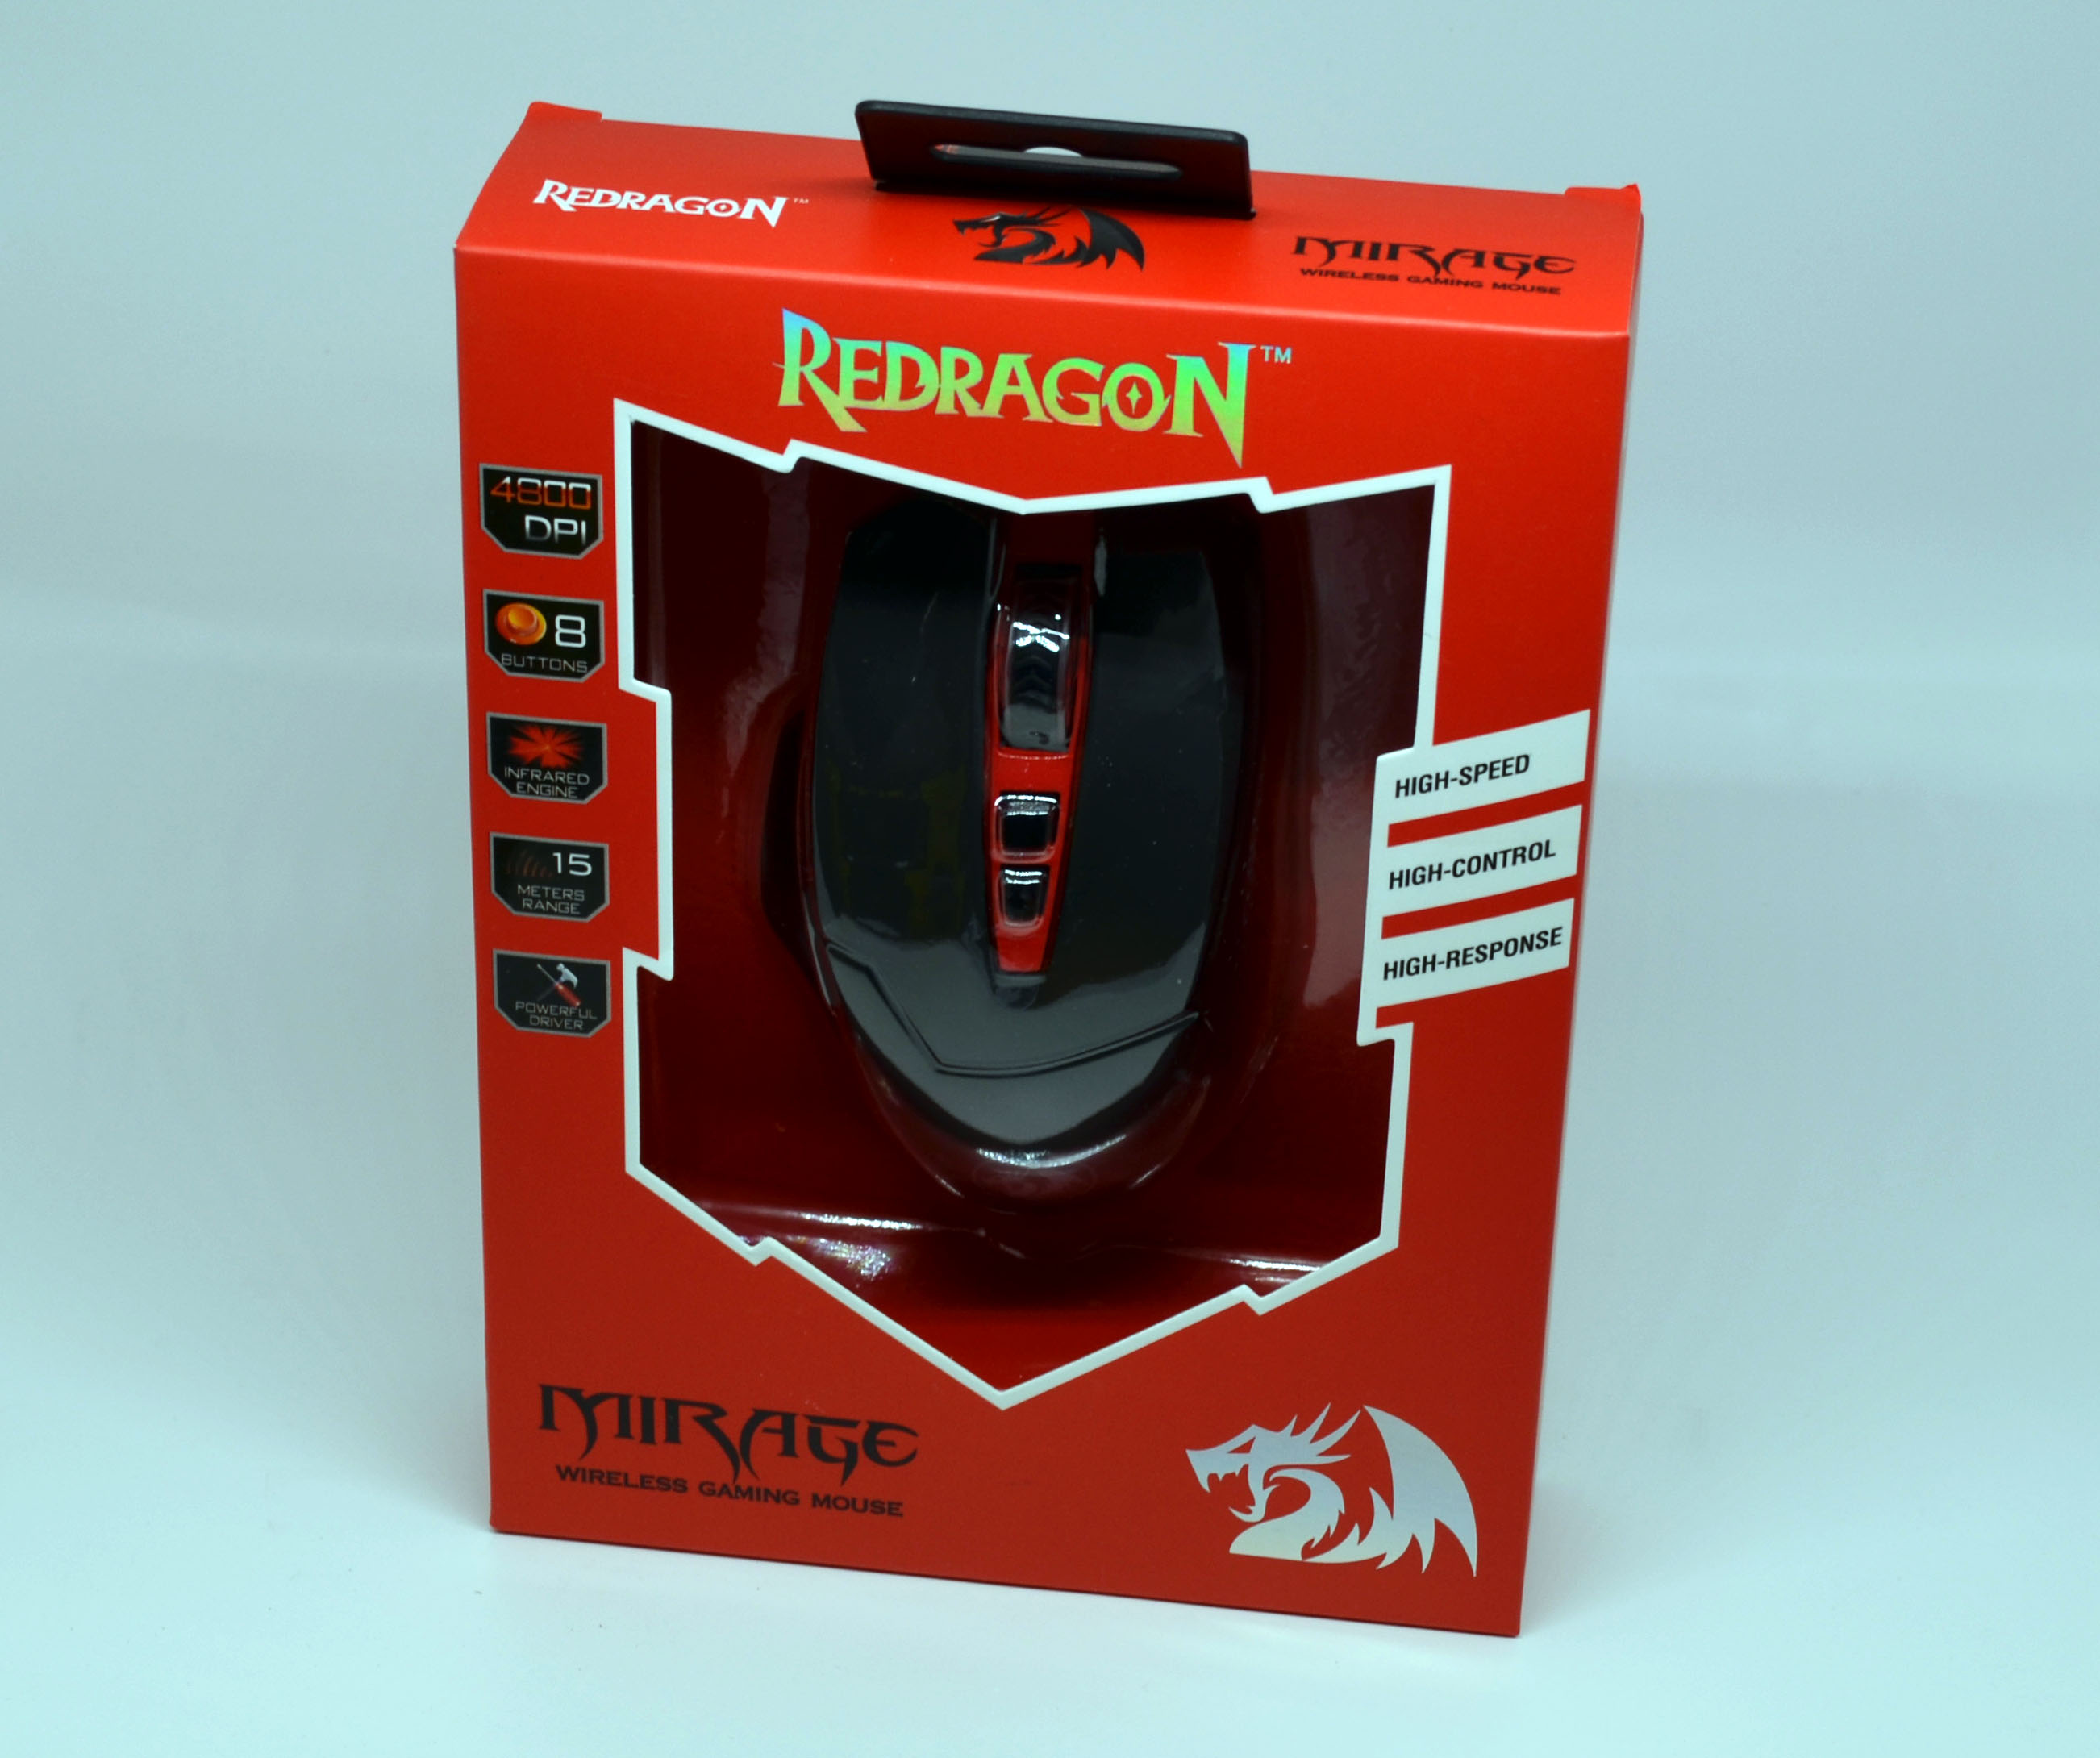 redragon keyboard and mouse drivers